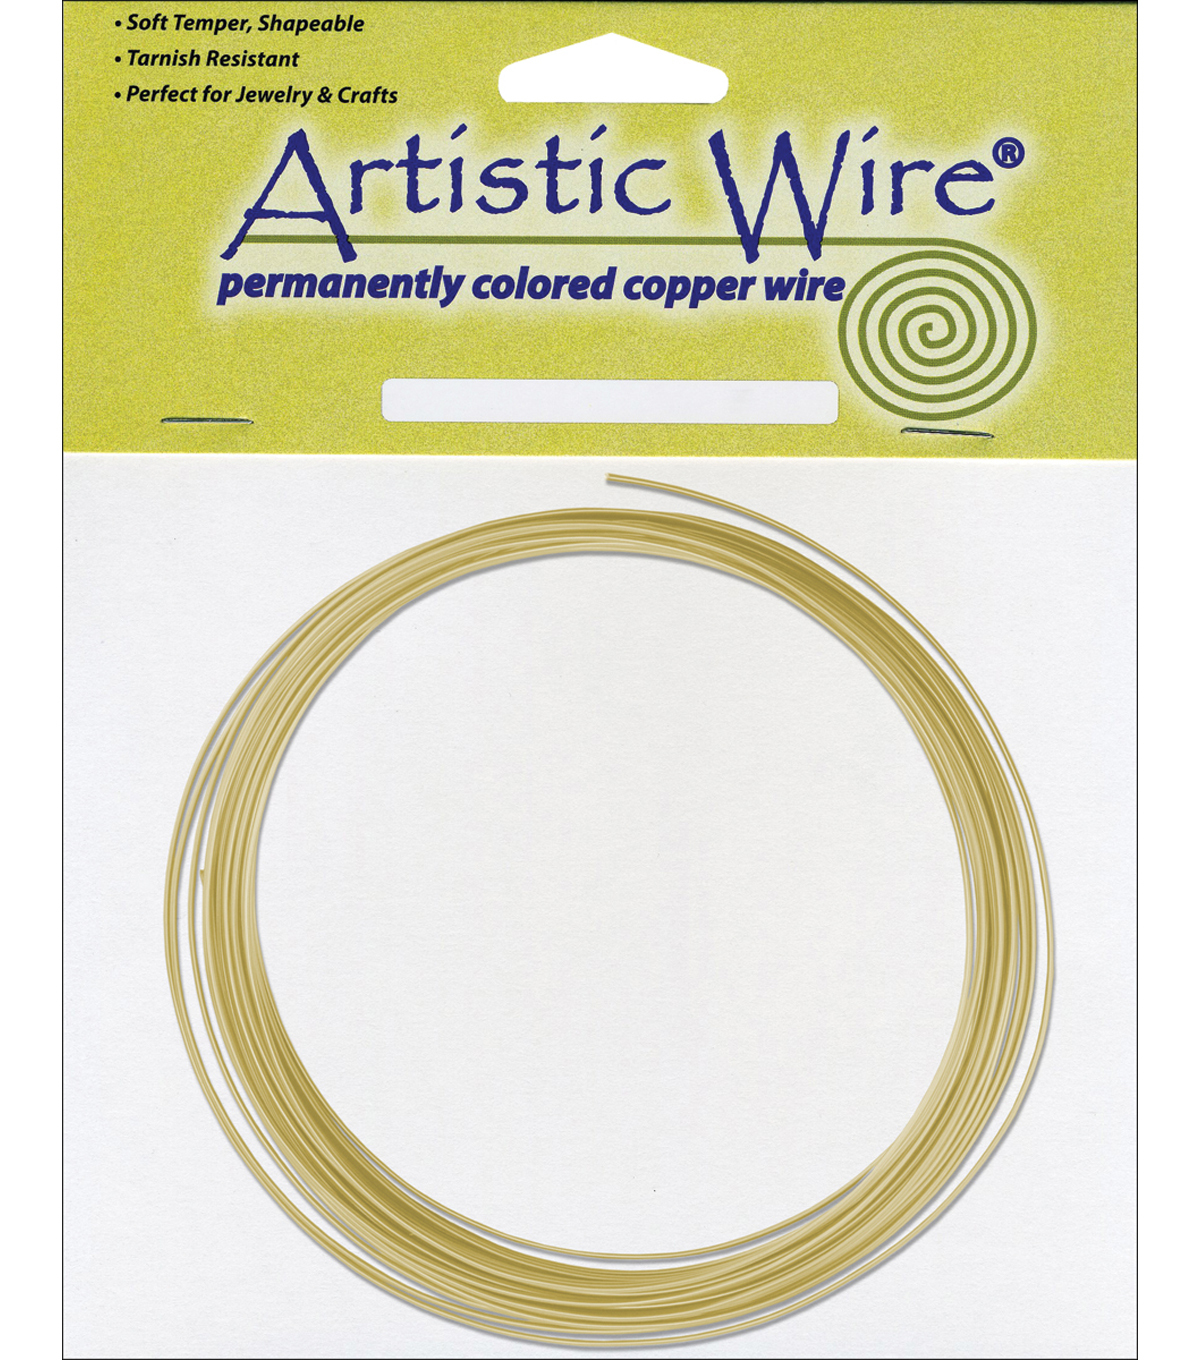 Non-Tarnish Artistic Wire 10 Feet/Pkg-Brass 16 Gauge